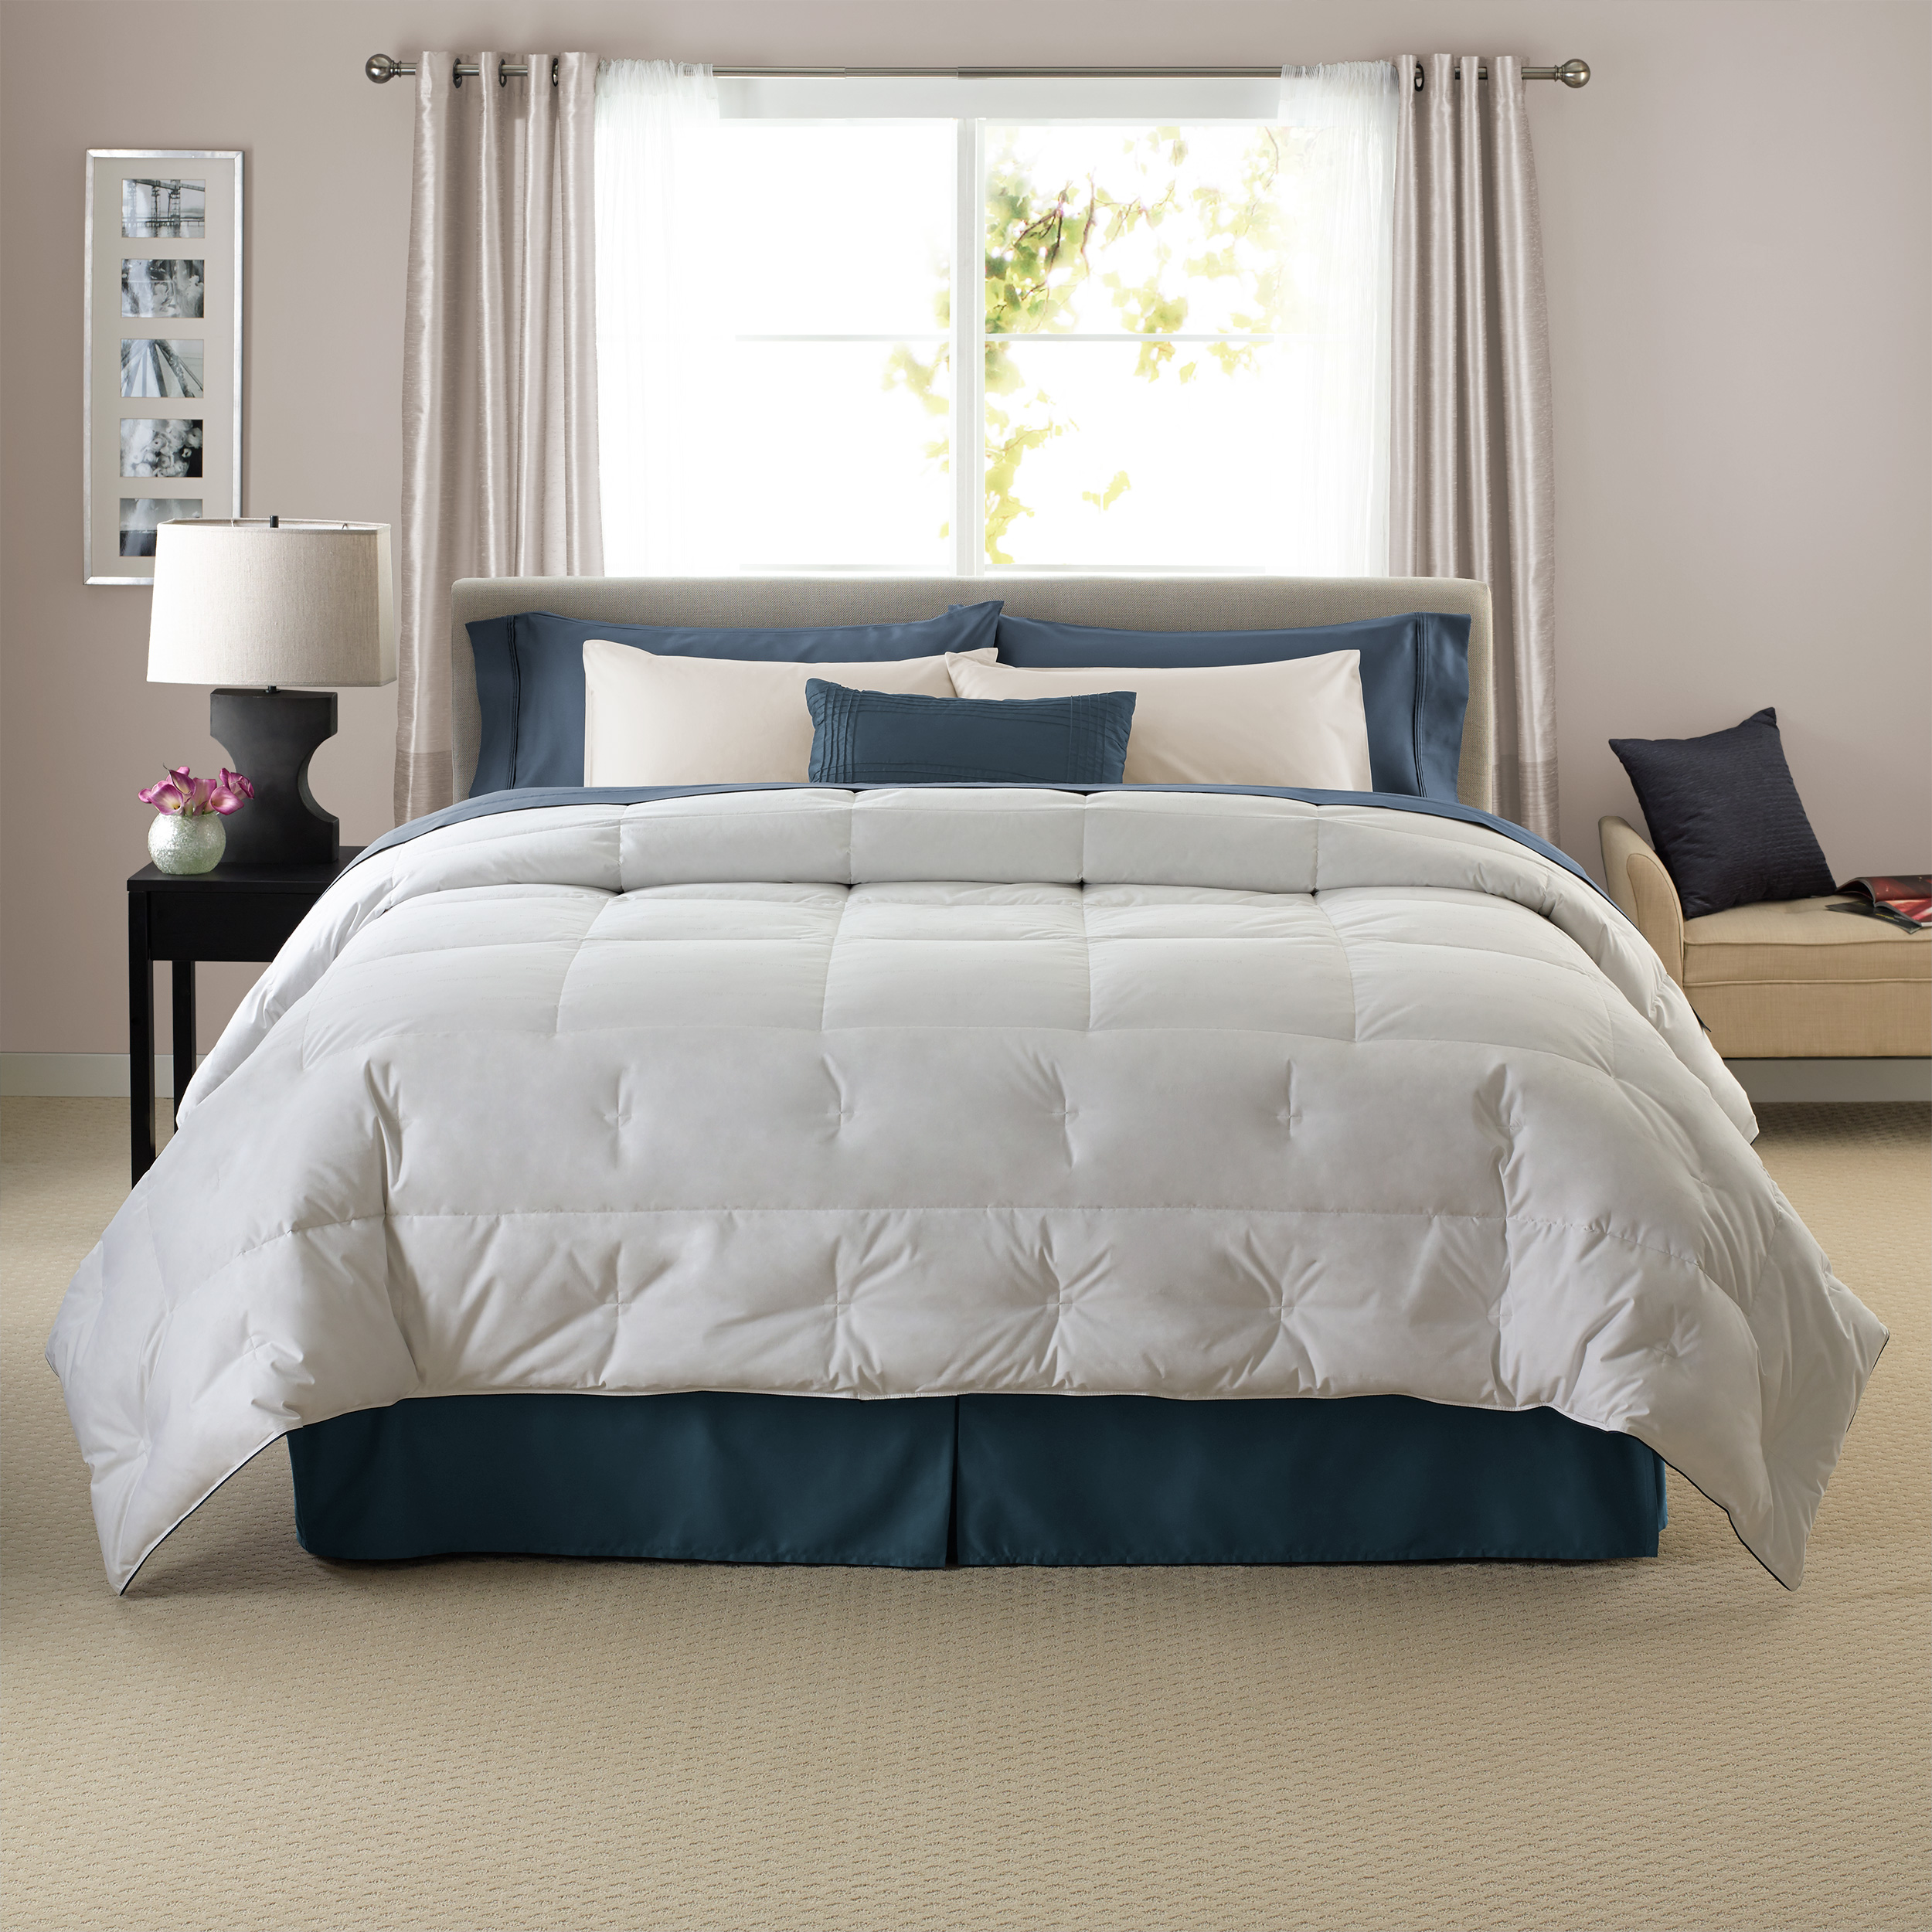 bedding amadeus the twin woven for cotton comforter c pacific comforters jacquard com qvc n down home alternatives coast